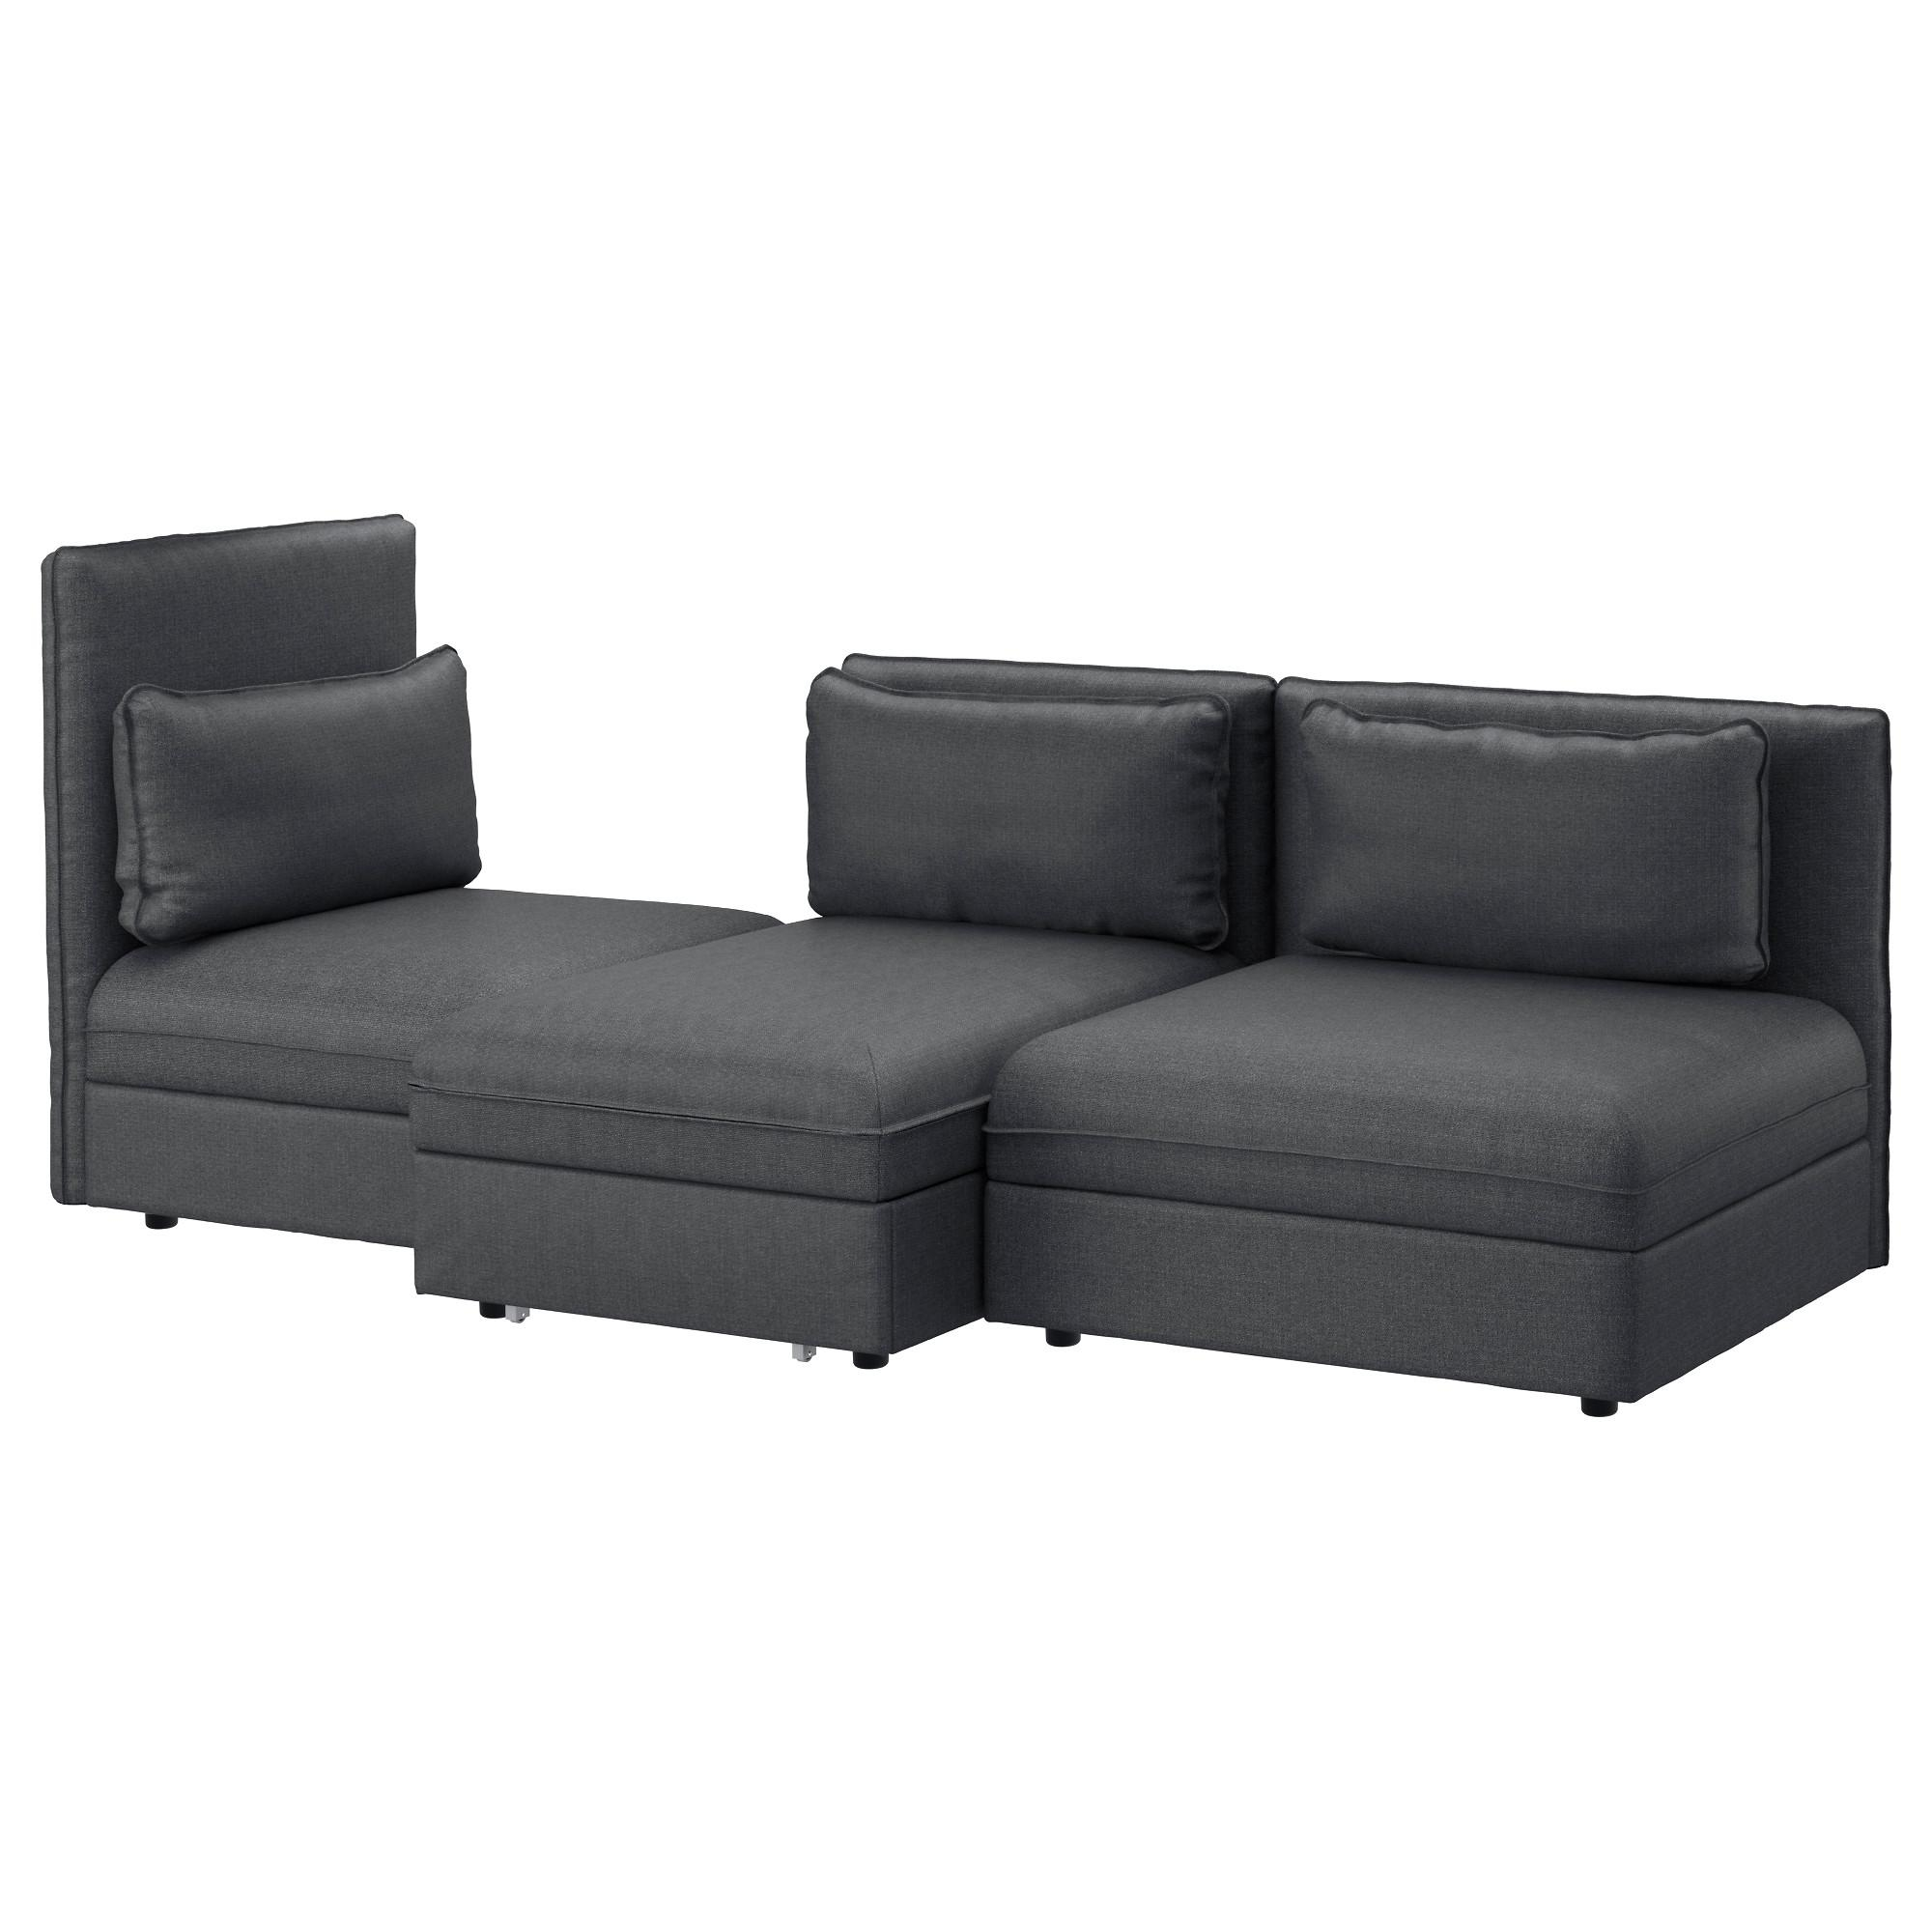 Vallentuna 3 Seat Sofa With Bed Hillared Dark Grey – Ikea With Regard To Sofas With Beds (Image 22 of 22)